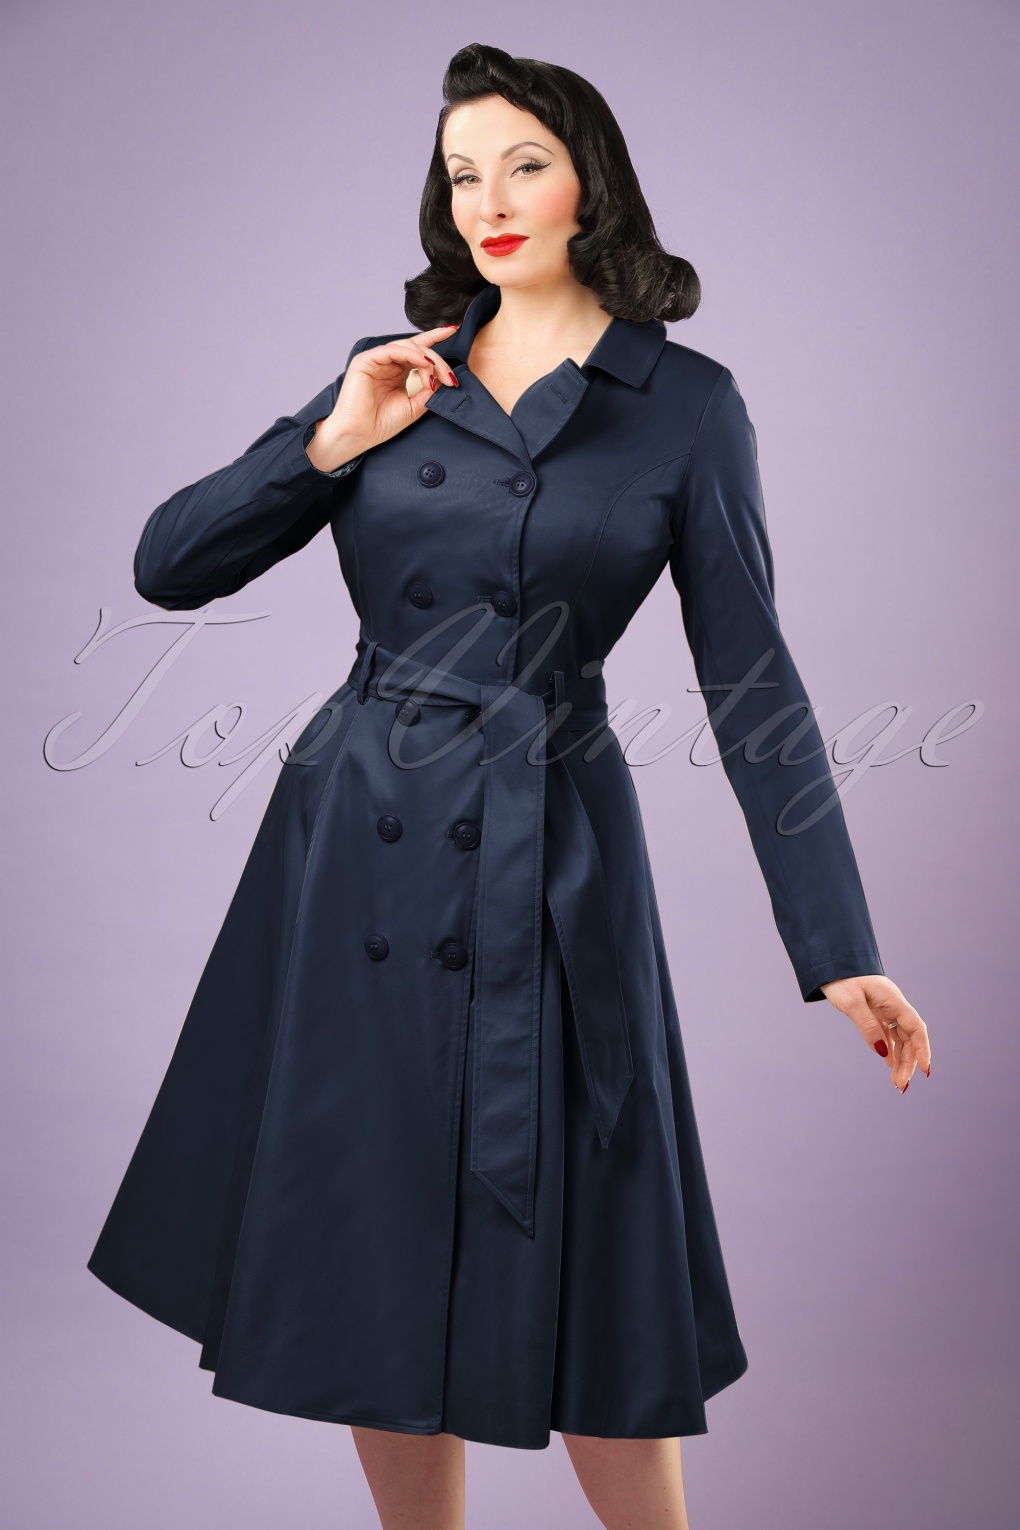 Vintage Coats & Jackets | Retro Coats and Jackets 40s Korrina Swing Trench Coat in Navy £129.56 AT vintagedancer.com